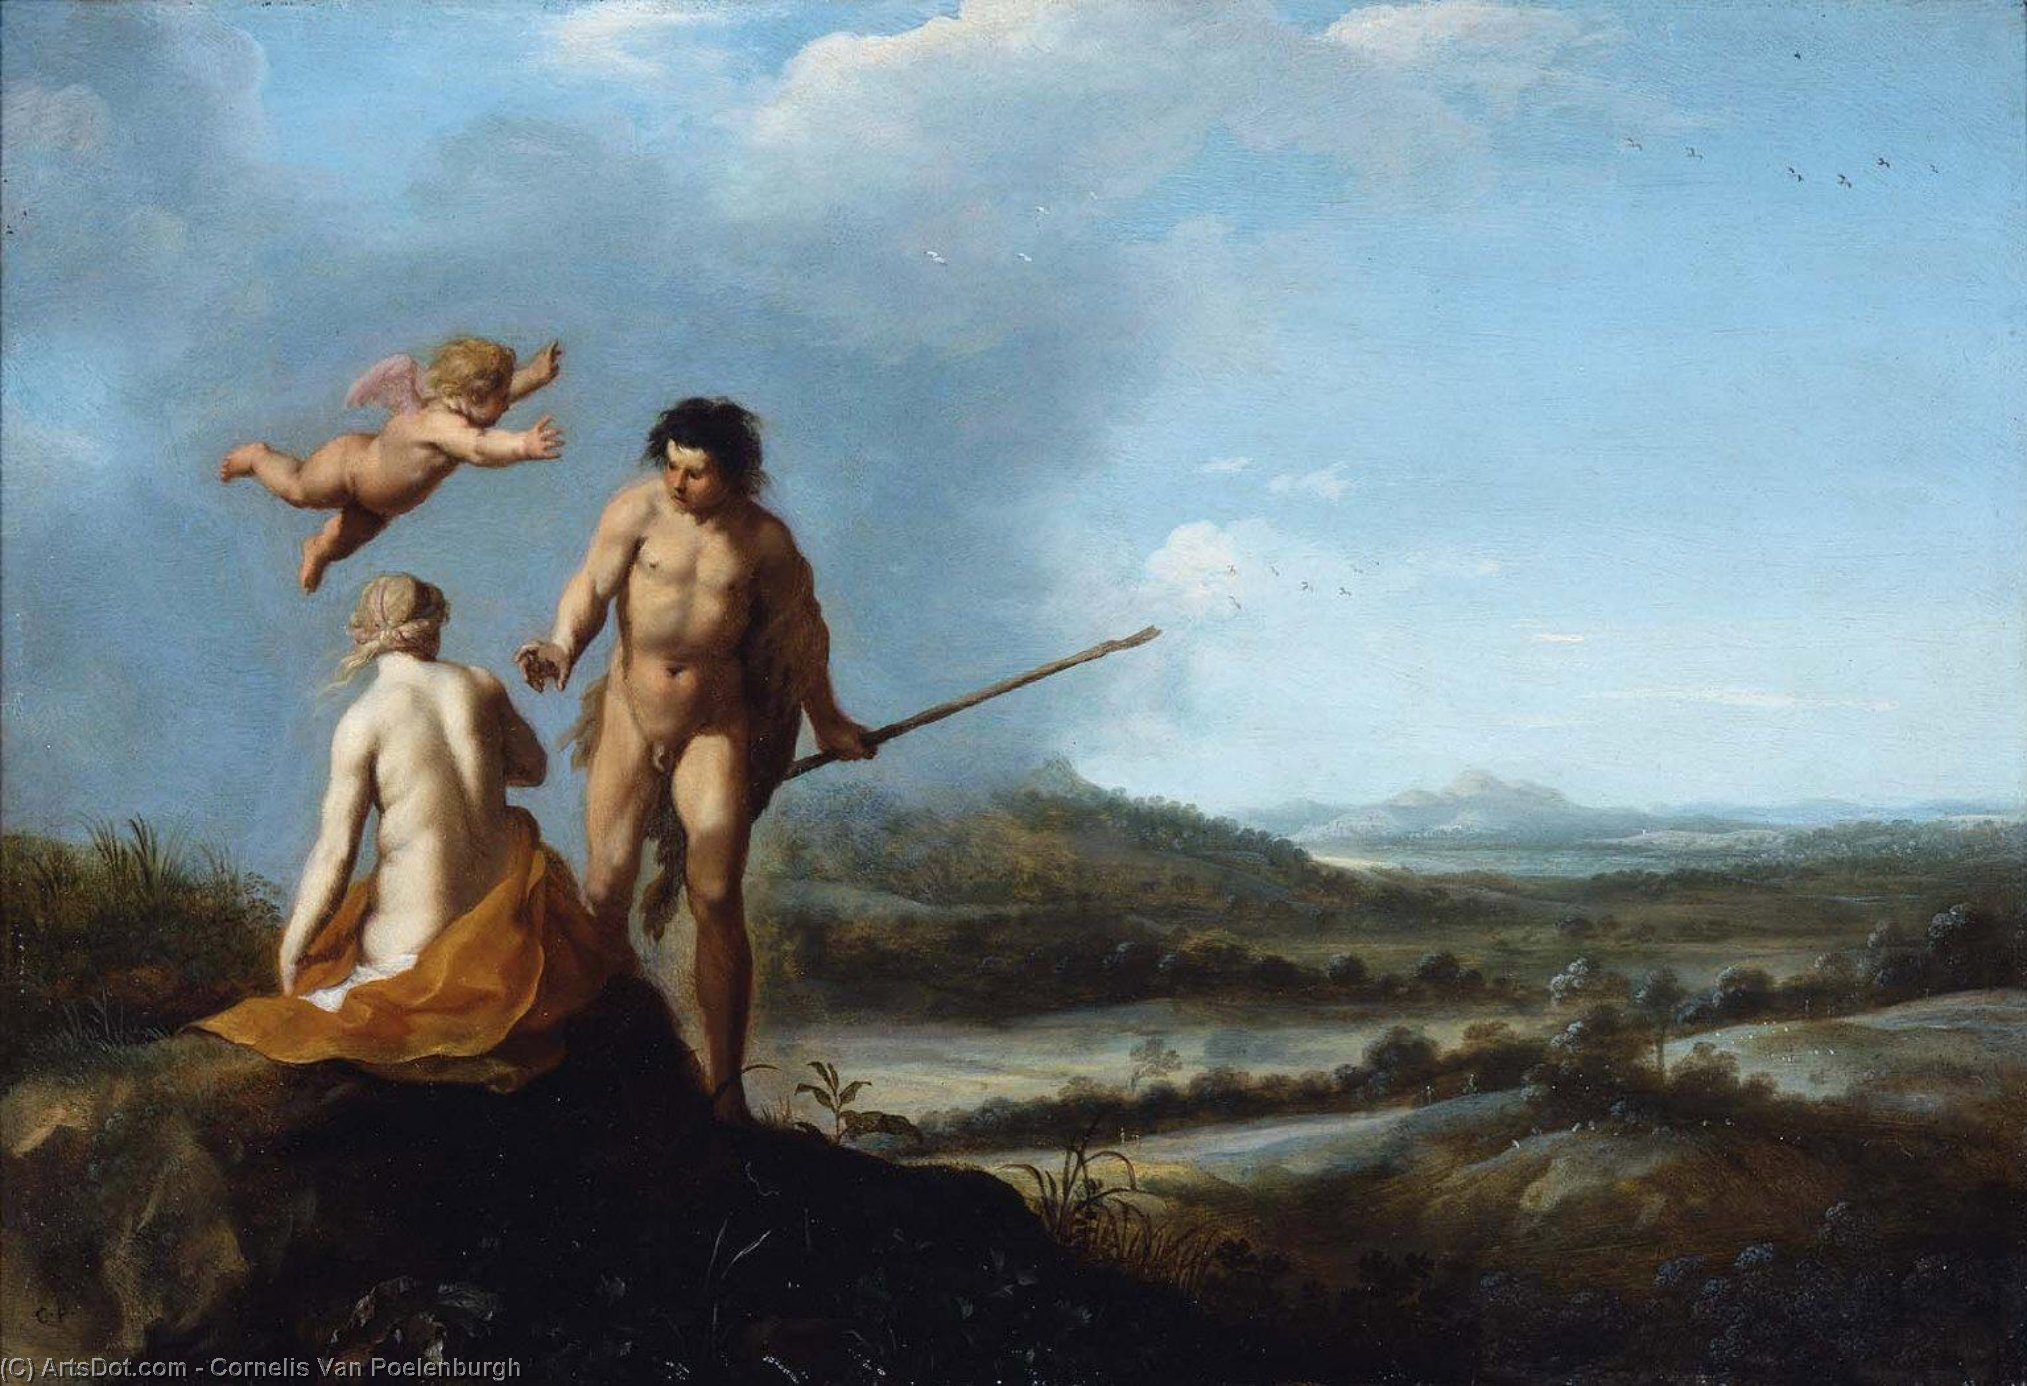 Nymph and Shepherd in Landscape, Oil On Copper by Cornelis Van Poelenburgh (1595-1667, Netherlands)